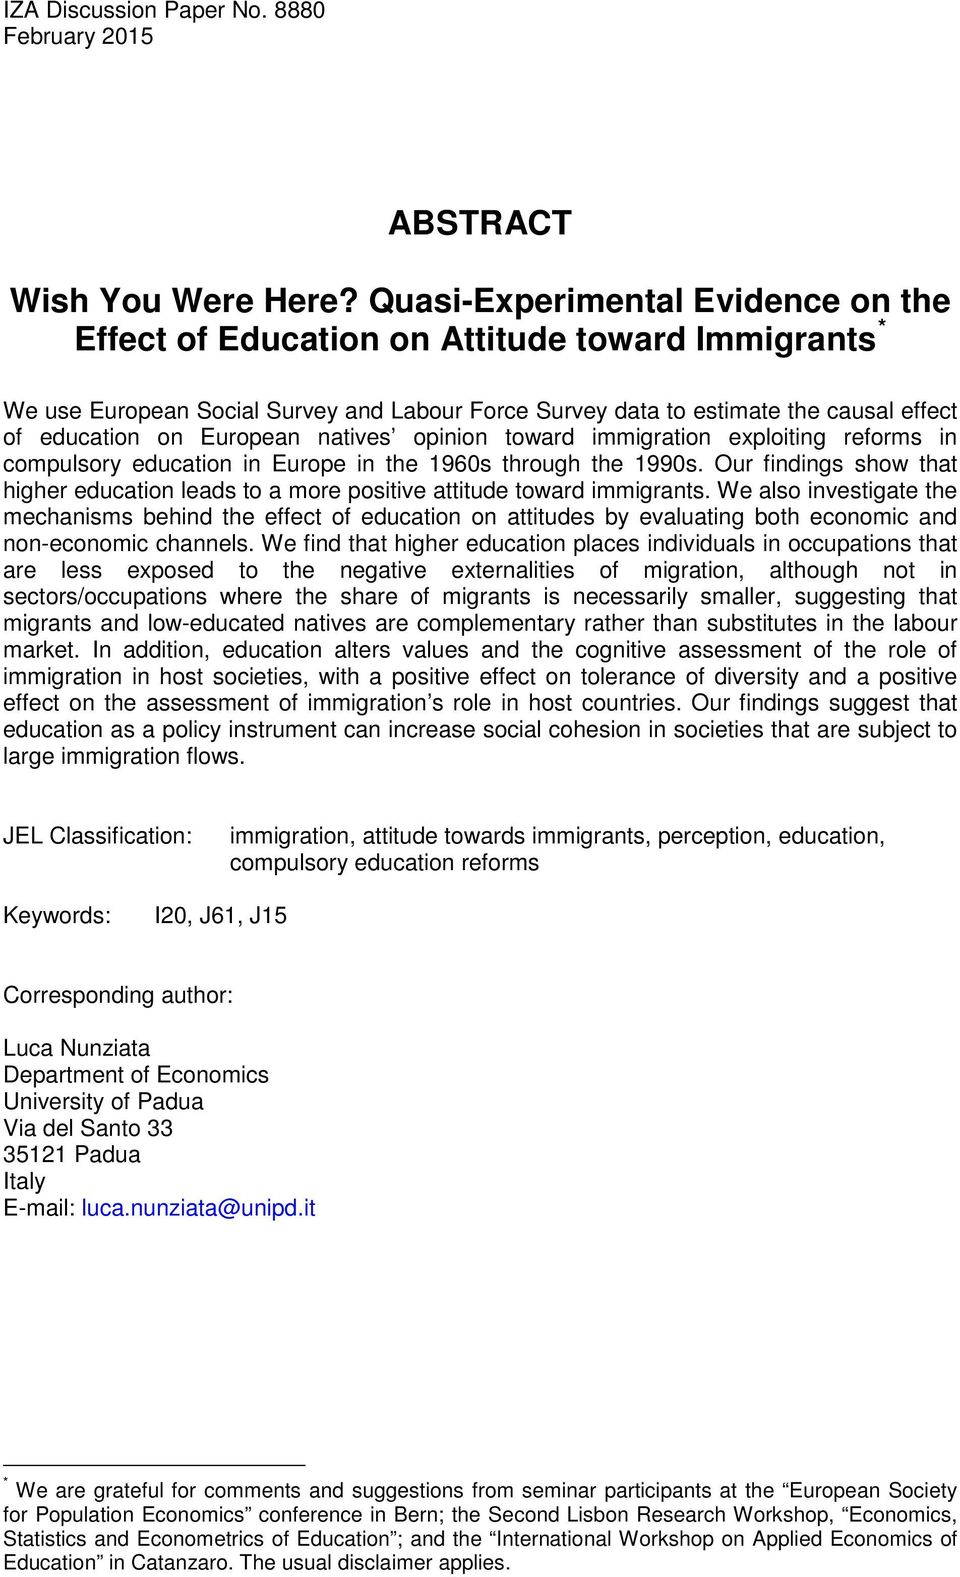 European natives opinion toward immigration exploiting reforms in compulsory education in Europe in the 1960s through the 1990s.